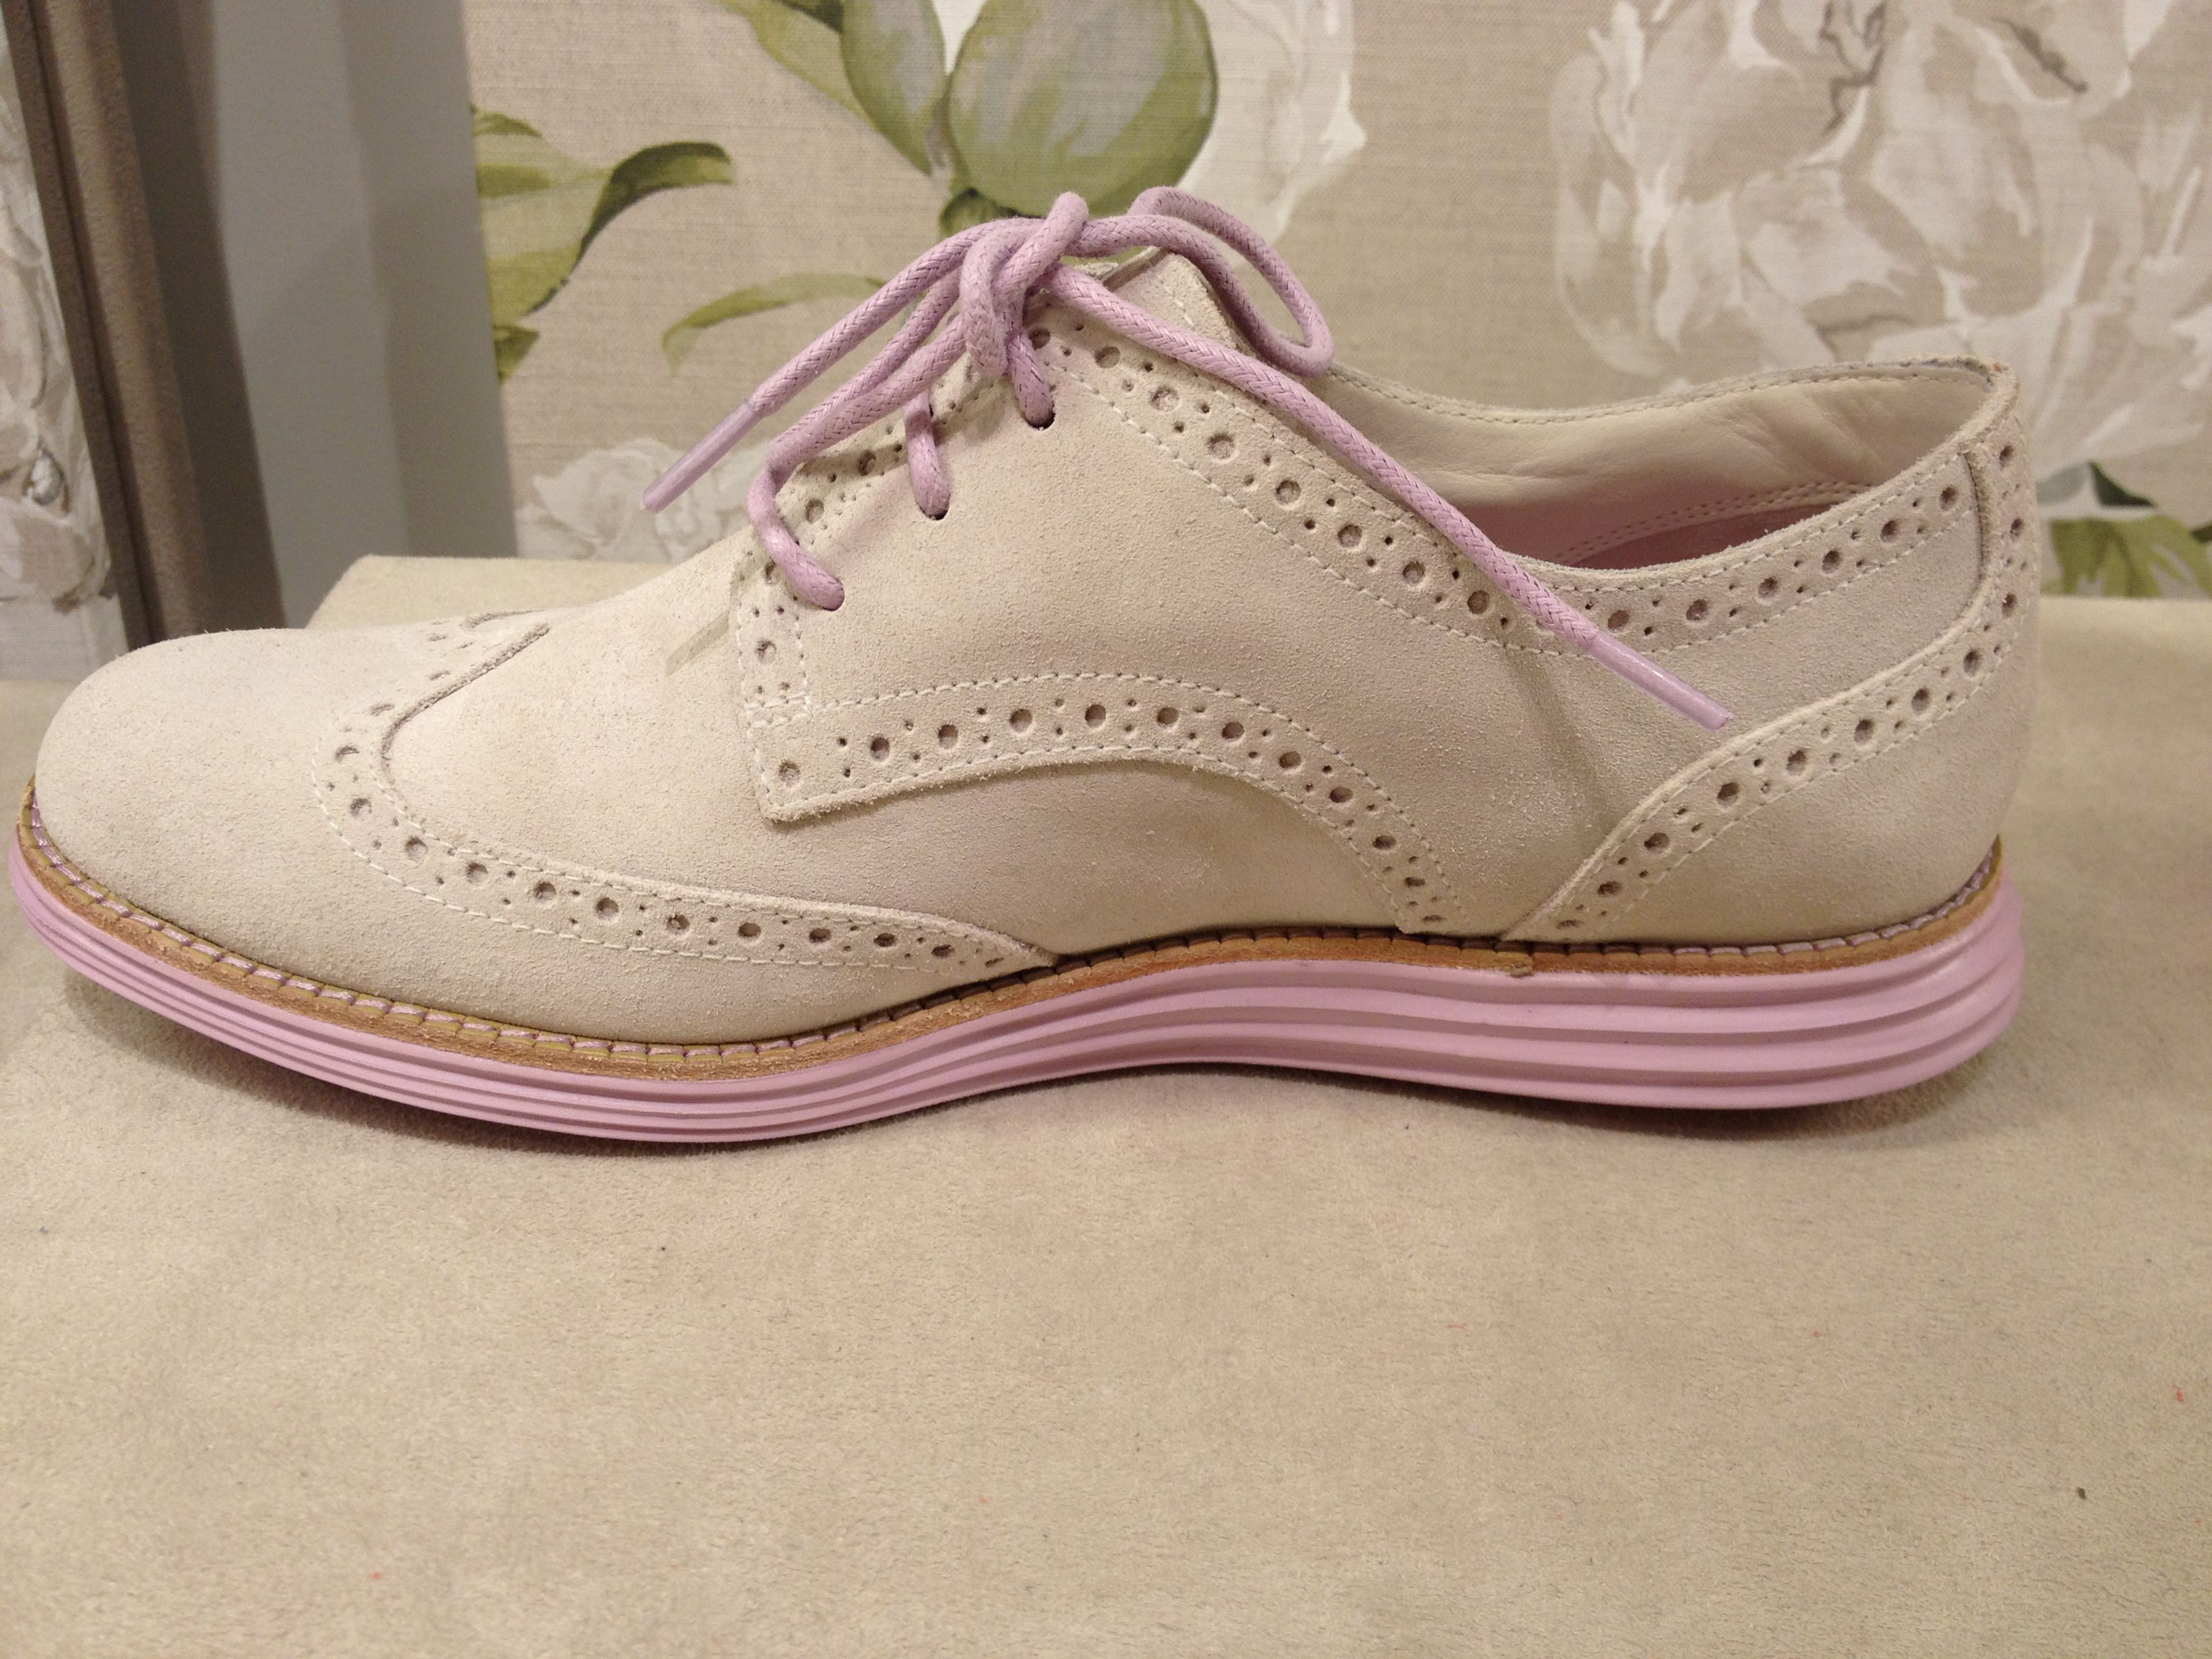 Haan Women's Ivory-Suede Larkspur Lunargrand Wing Tip with Nike's Lunarlon  cushioning system--Mission shoes?